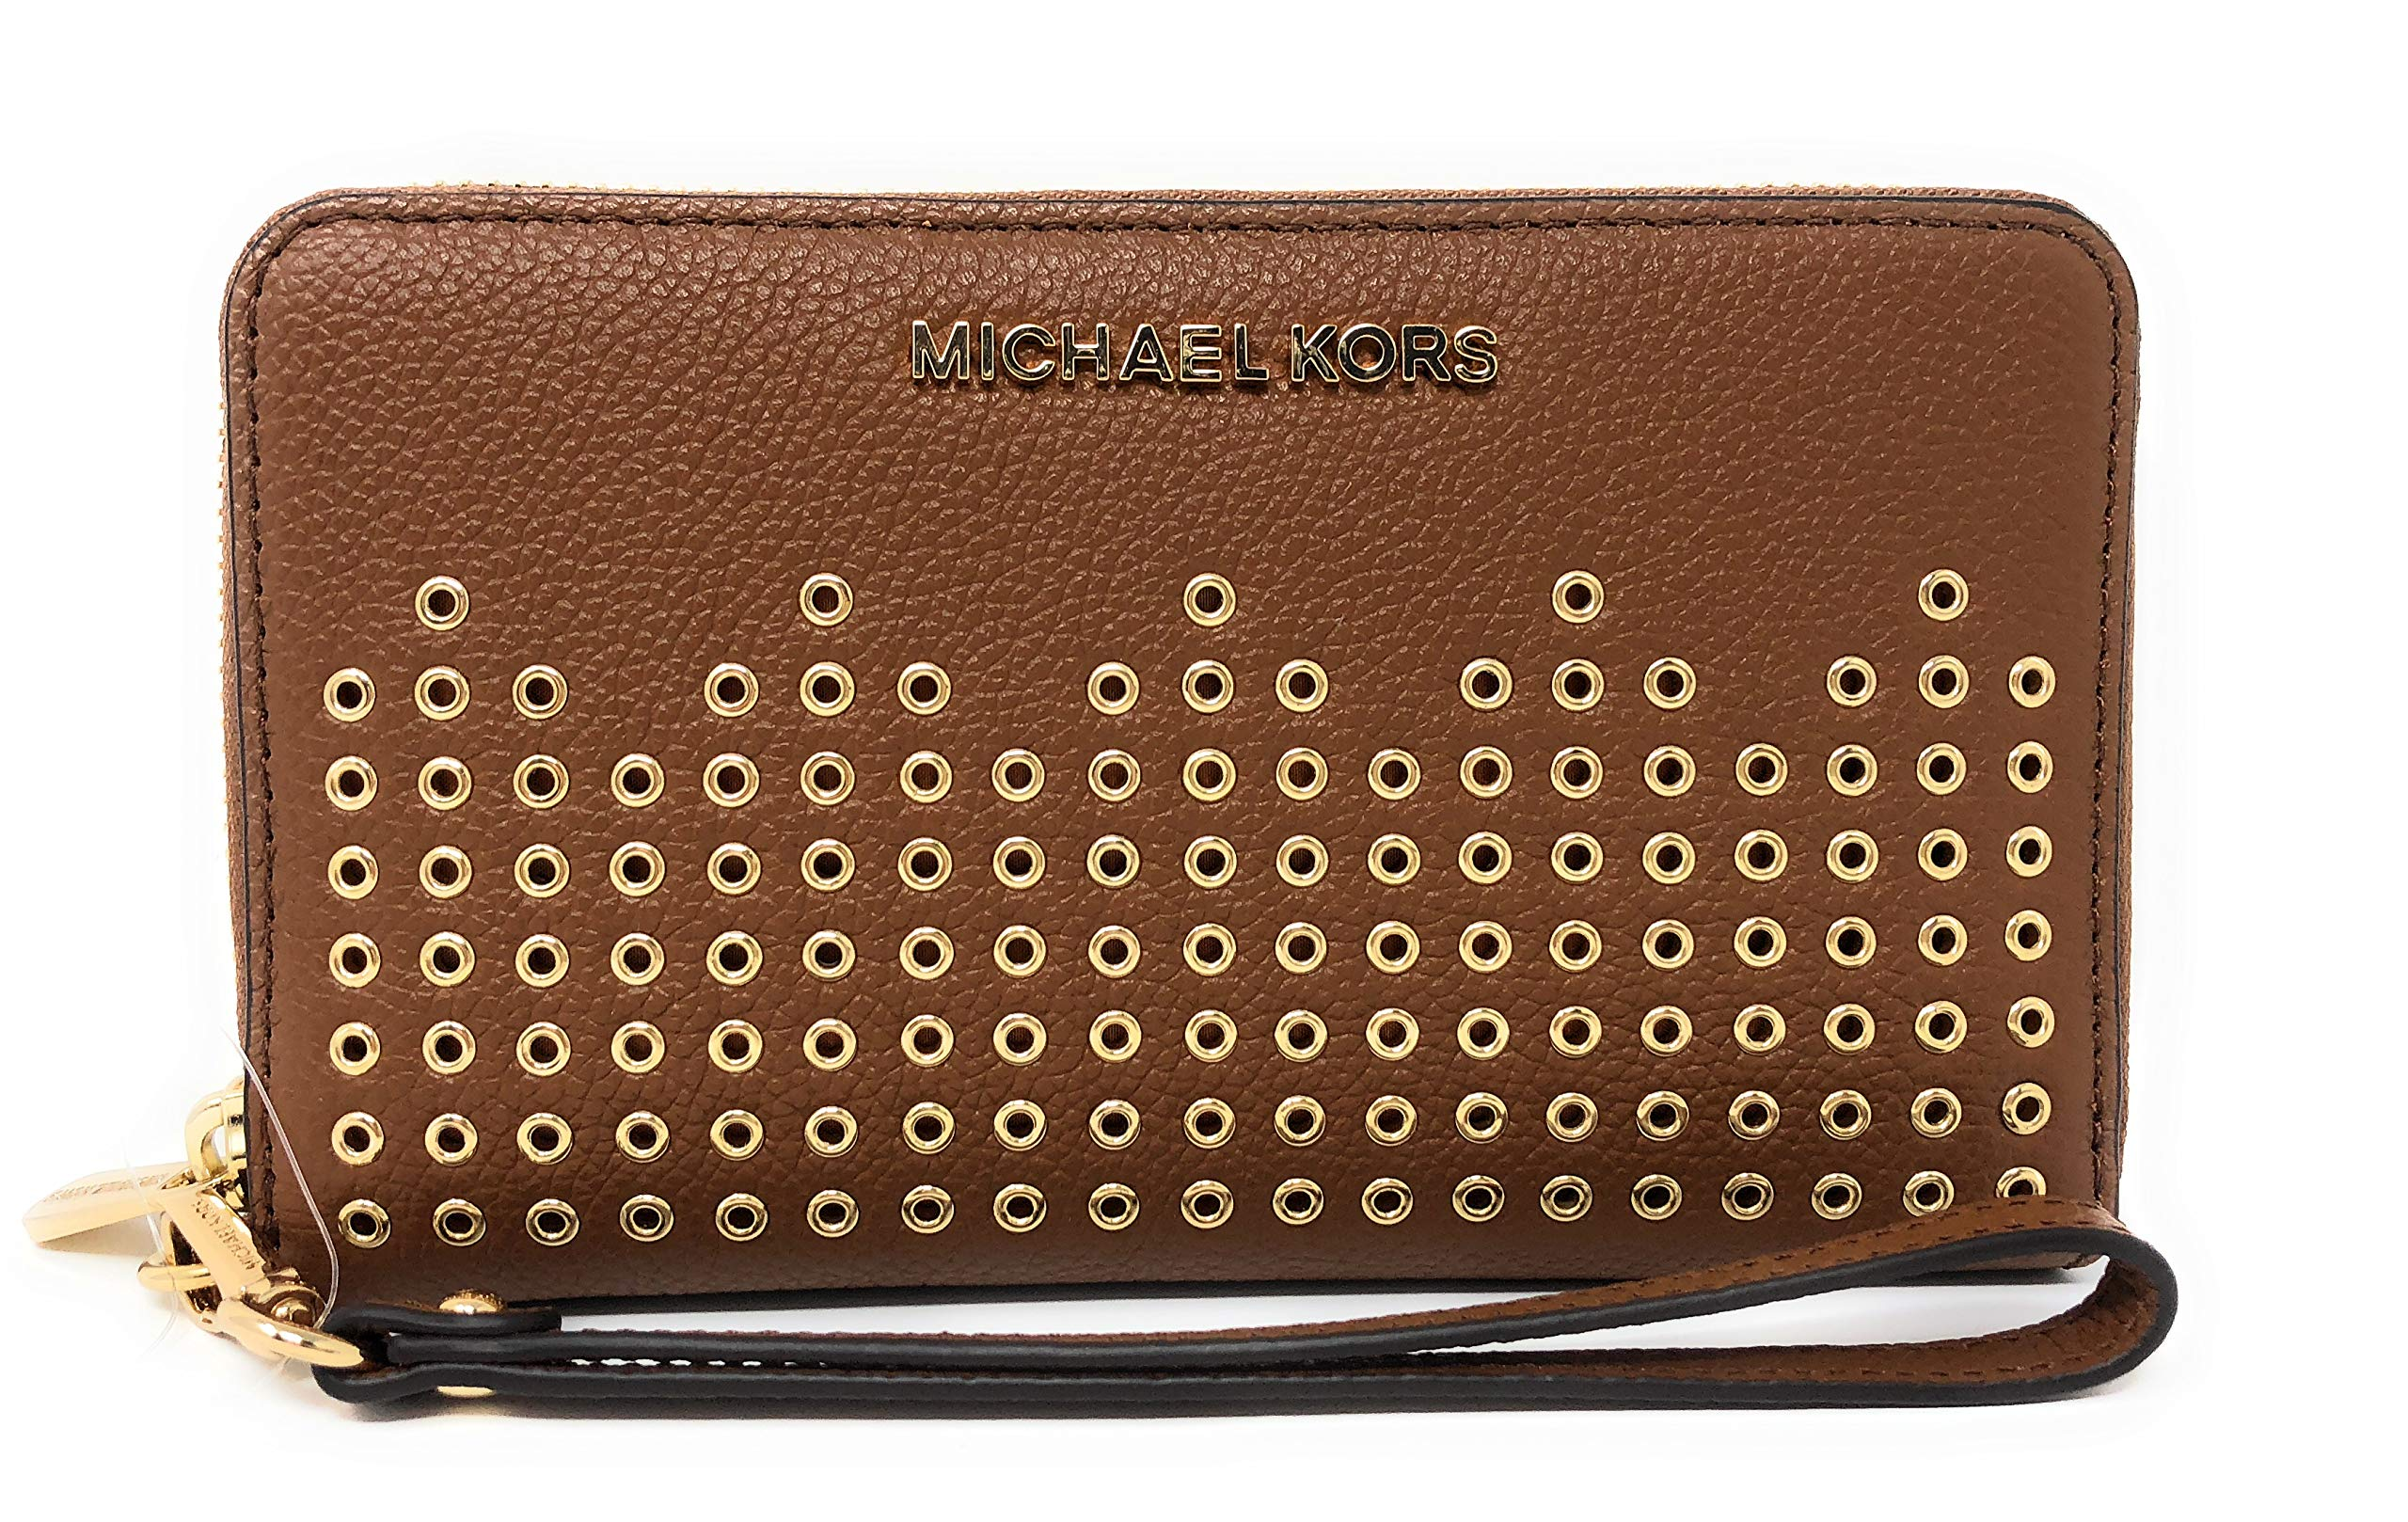 Michael Kors Hayes LG Flap Multi Function Phone Case Leather Wristlet Wallet (Luggage)